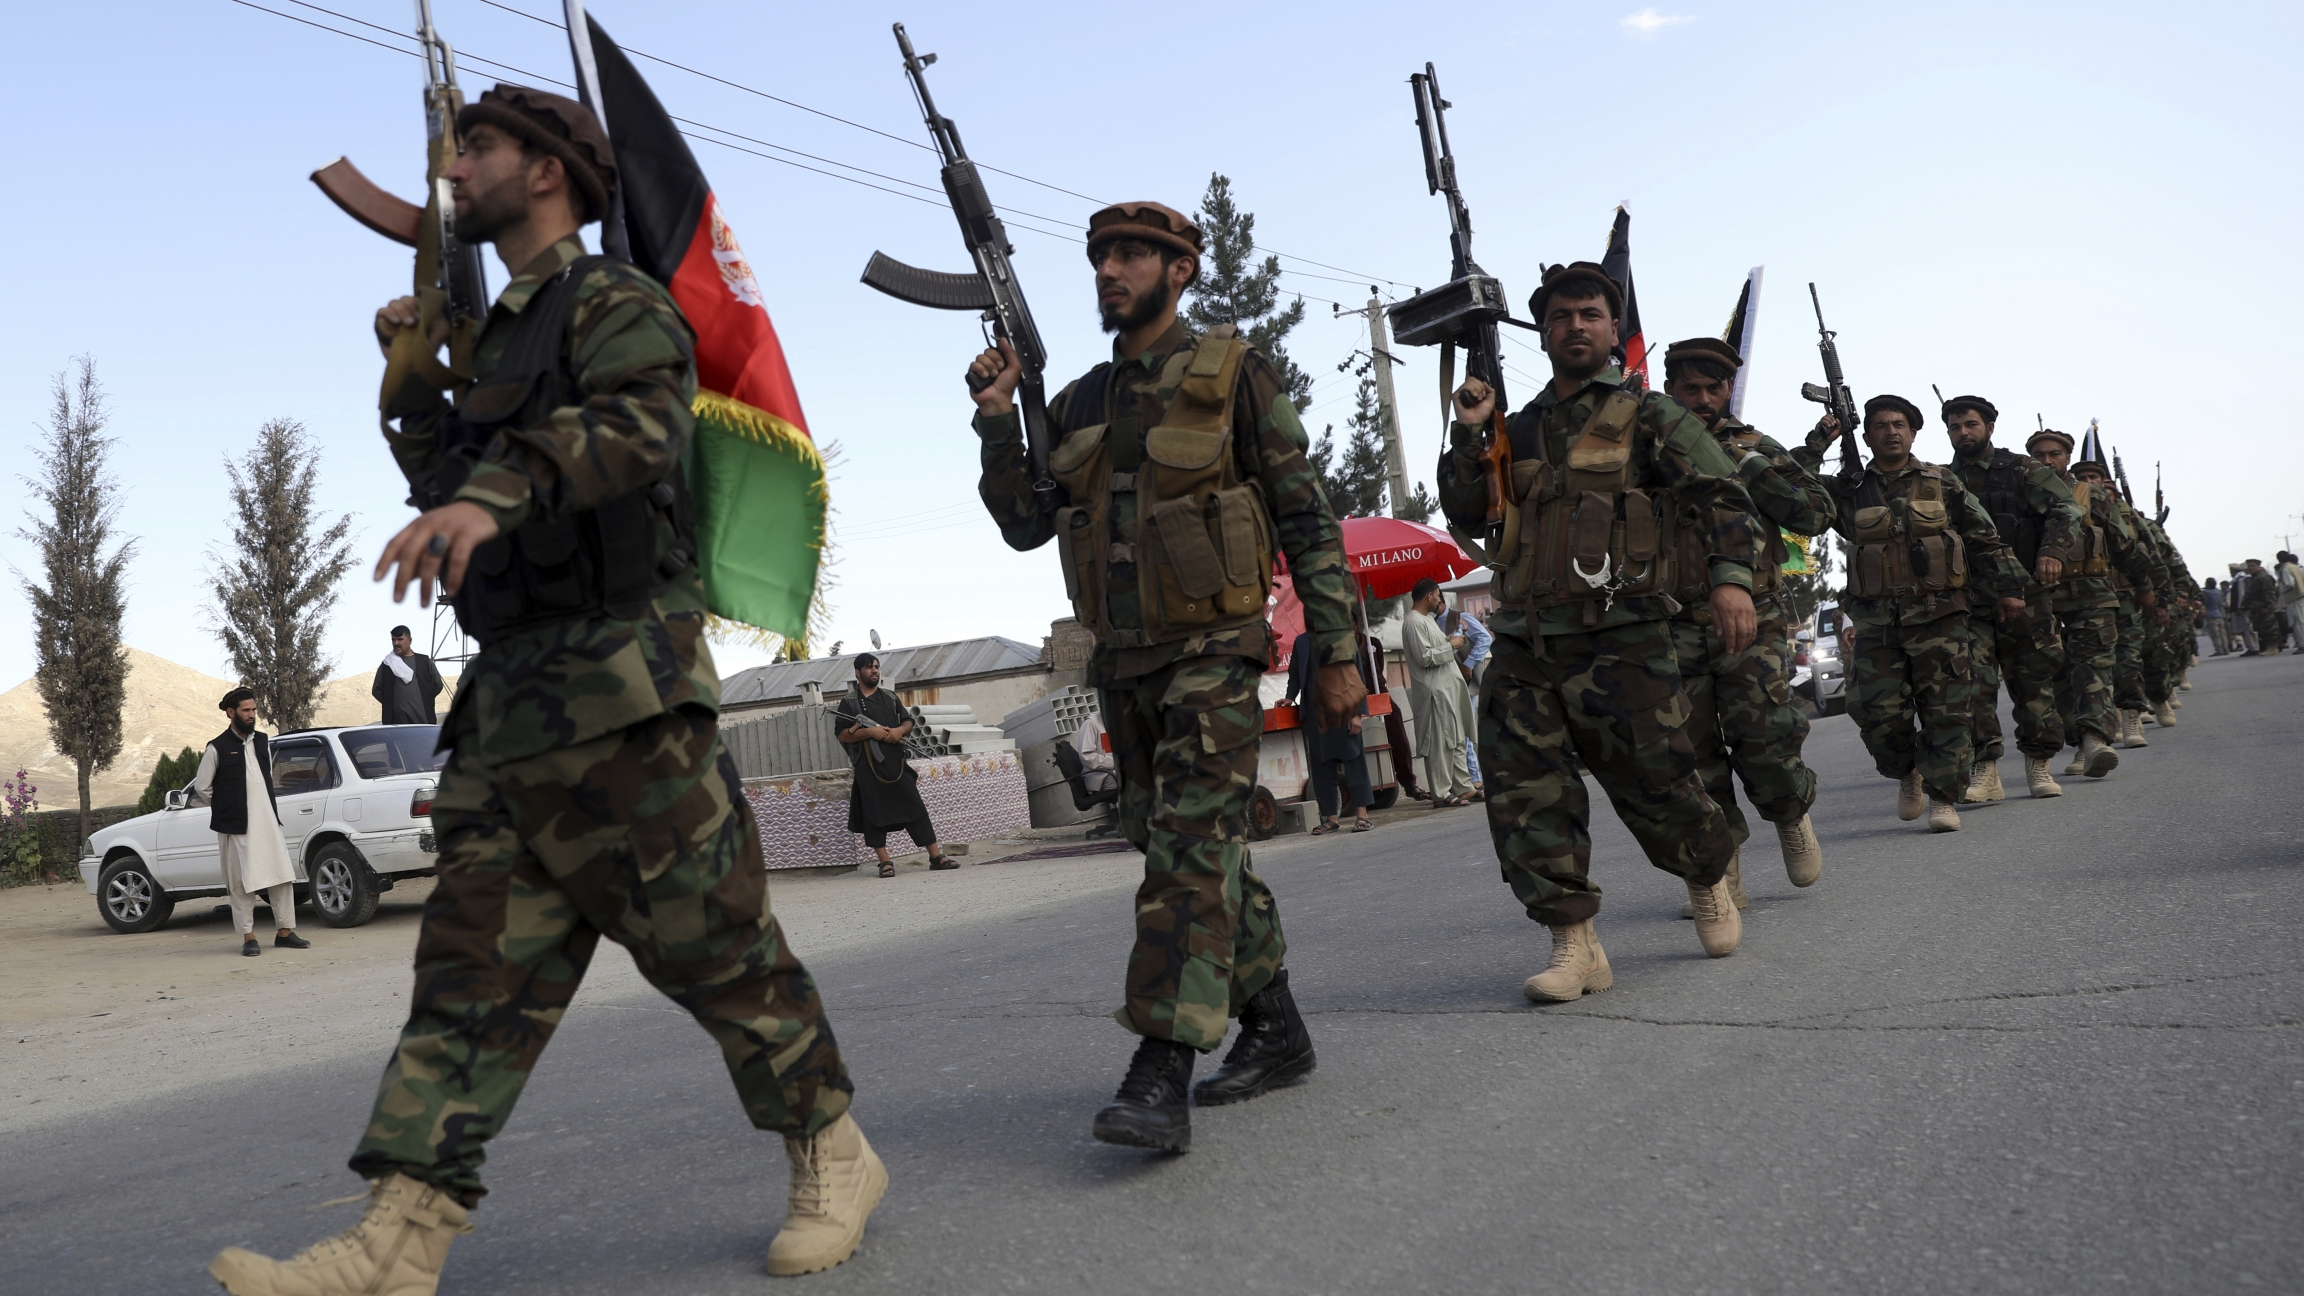 Afghan militiamen join Afghan defense and security forces during a gathering in Kabul, Afghanistan, Wednesday, June 23, 2021.